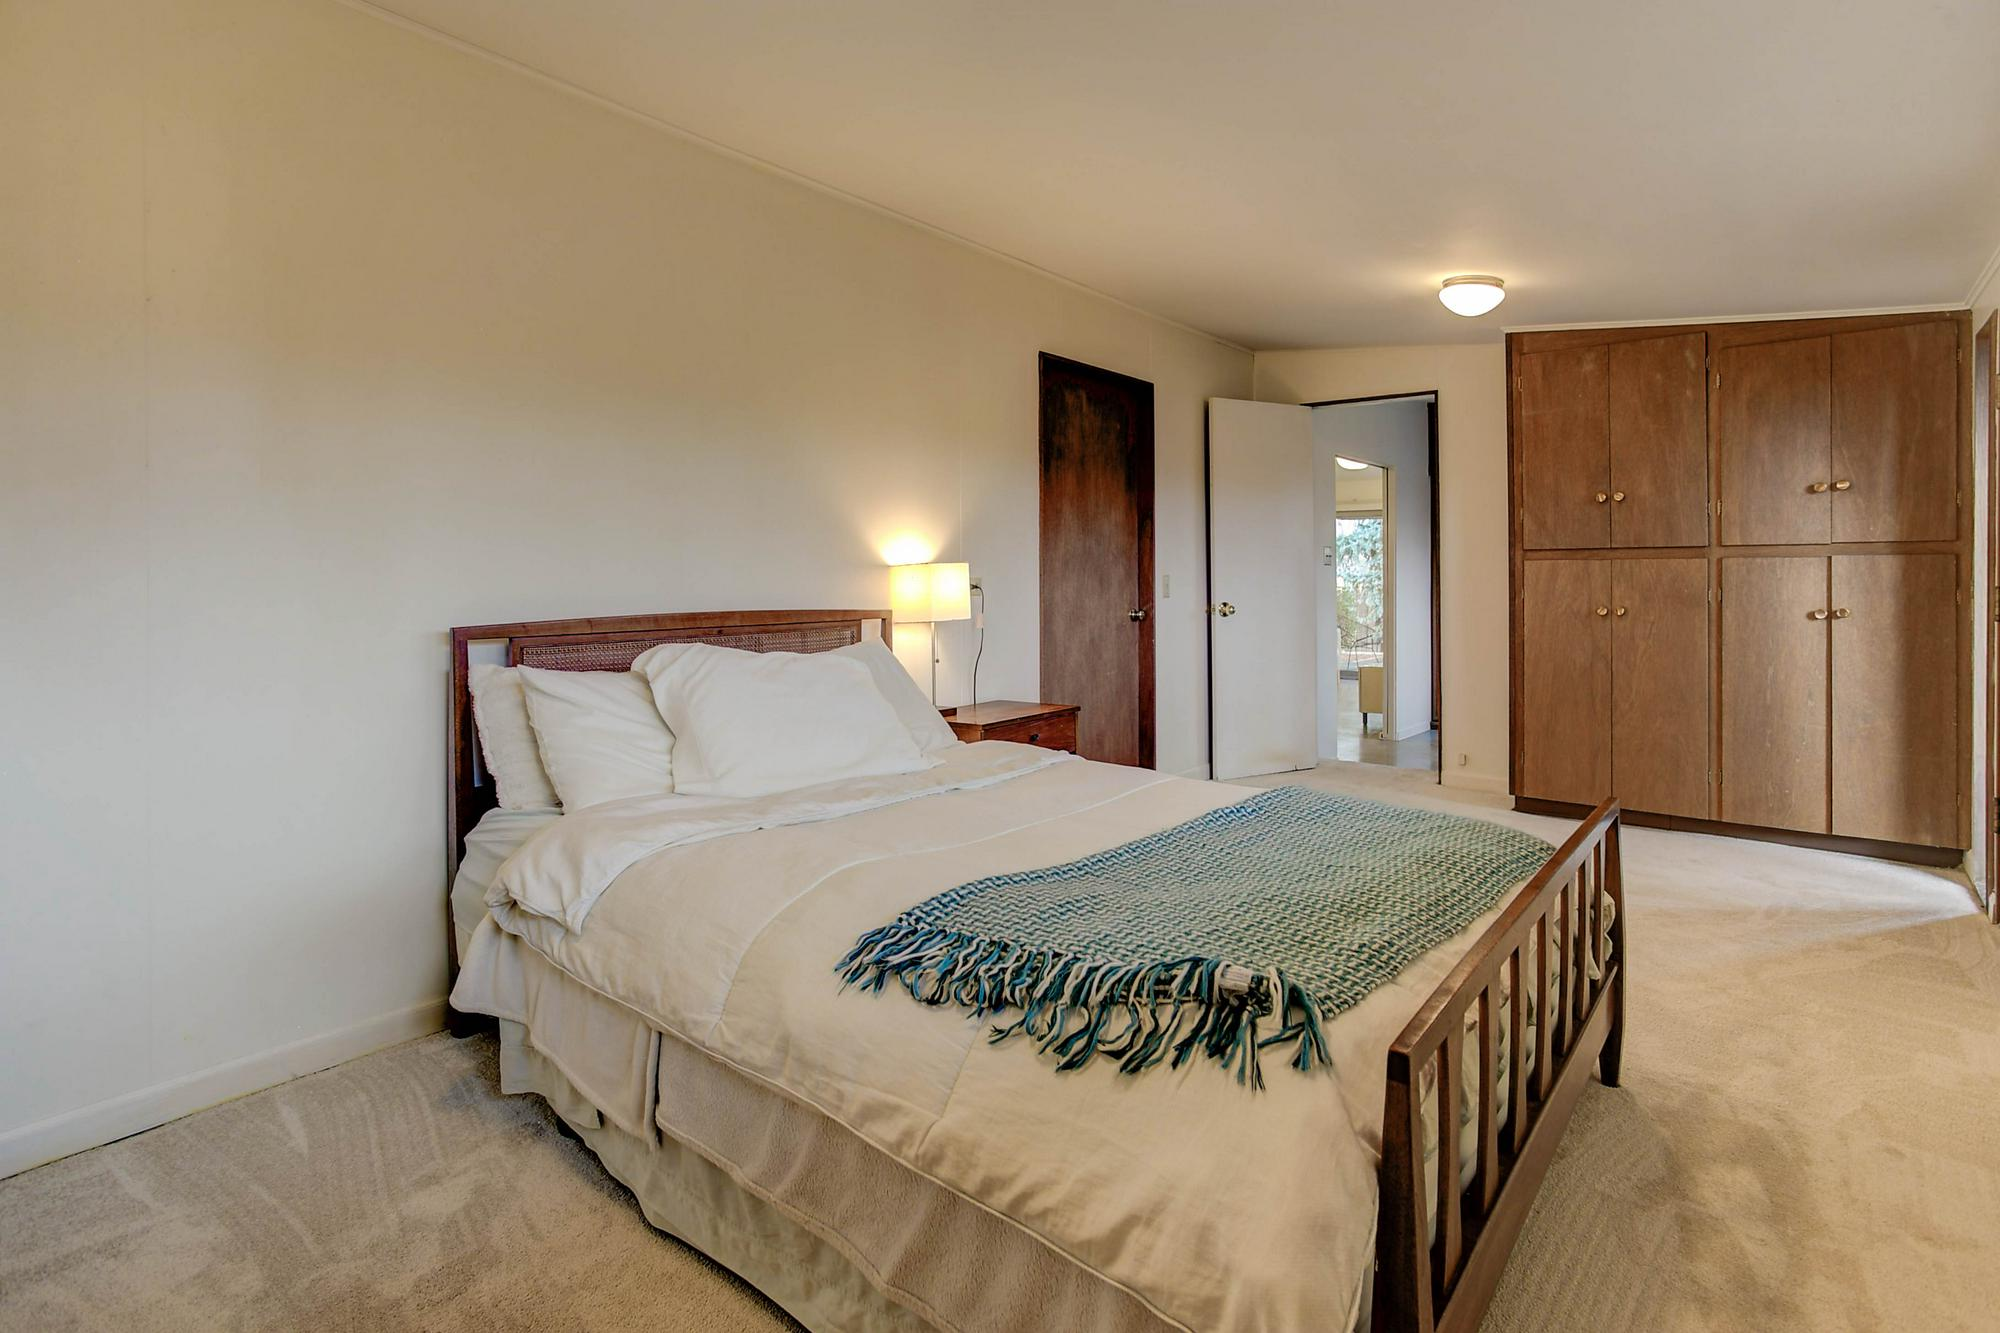 Listassistimage-84046-web_ready-3011%2bsouth%2bfranklin%2bstreet_masterbedroomd-2000x2000